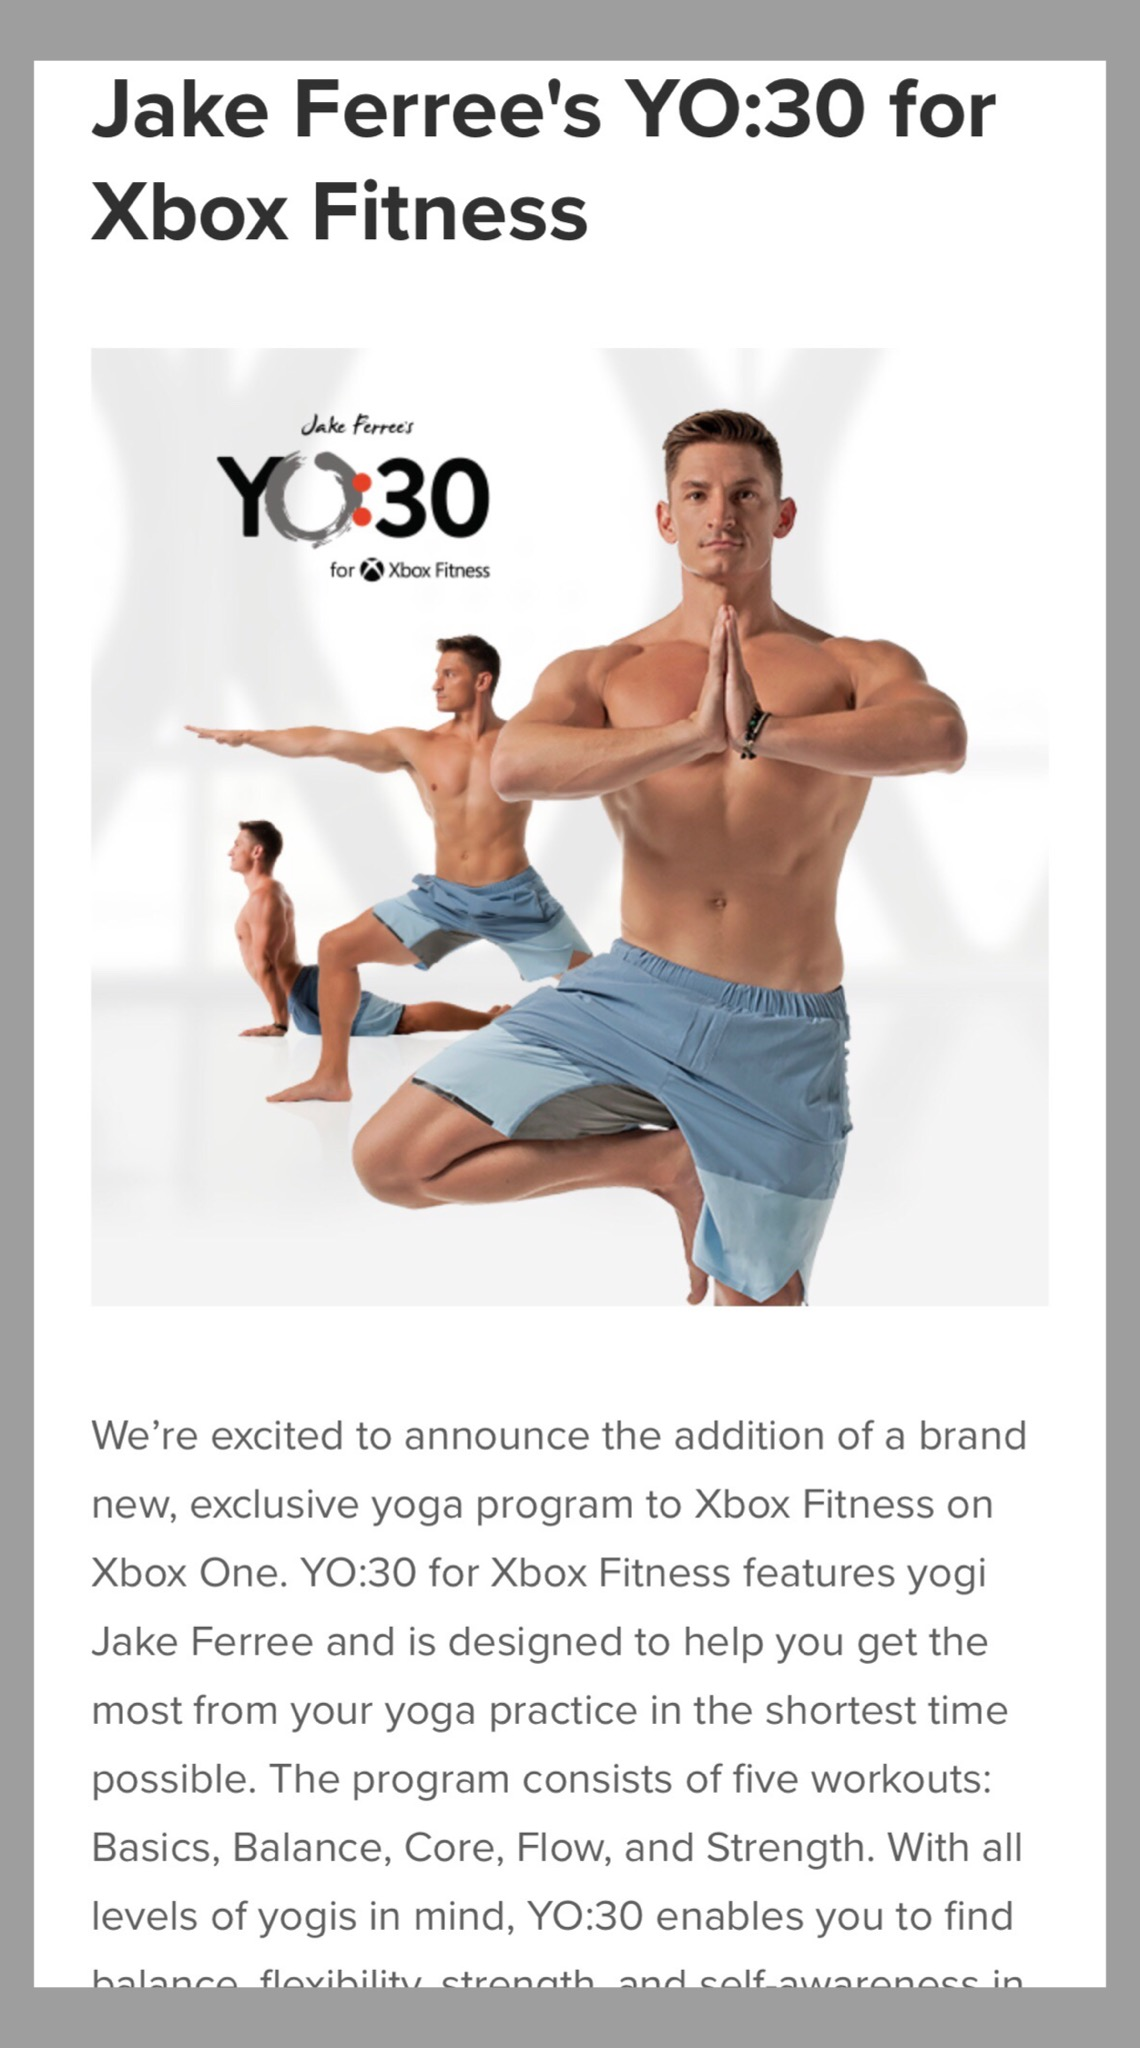 CREATOR OF YO:30 YOGA PROGRAM FOR XBOX FITNESS